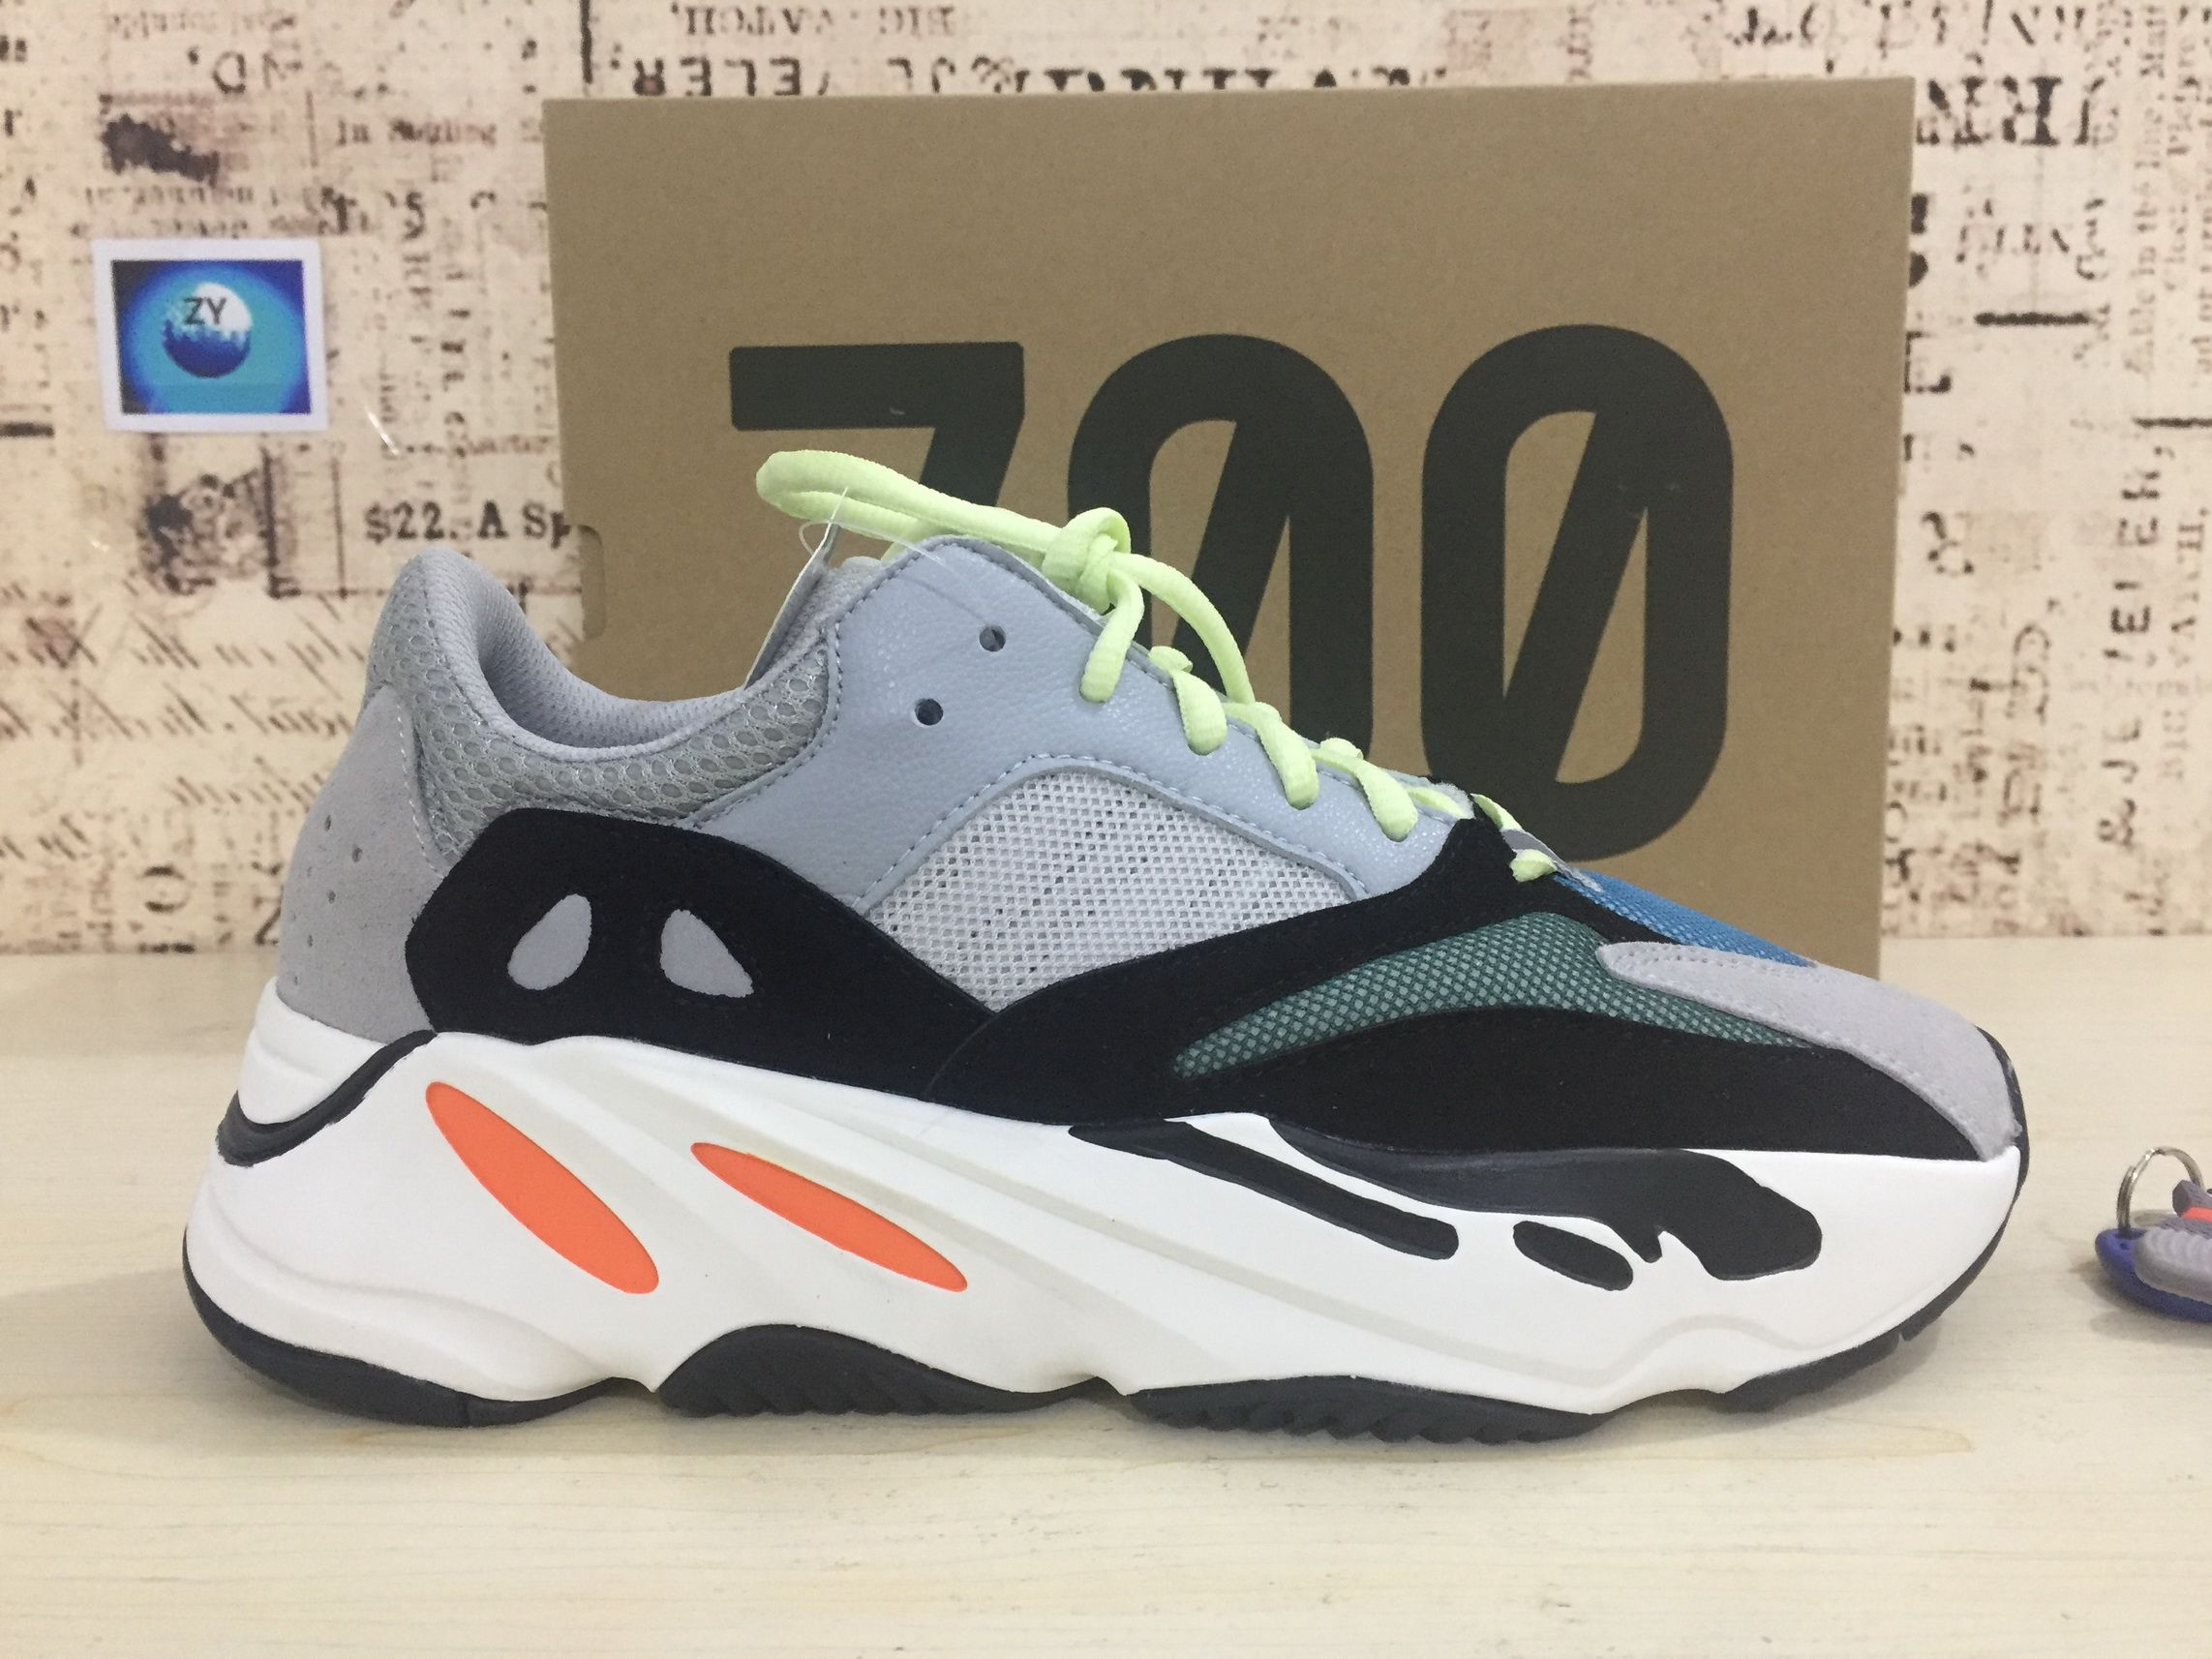 5383d388f Fashion Adidas Yeezy Wave Runner 700 Solid Grey Chalk White Core Black Shoe